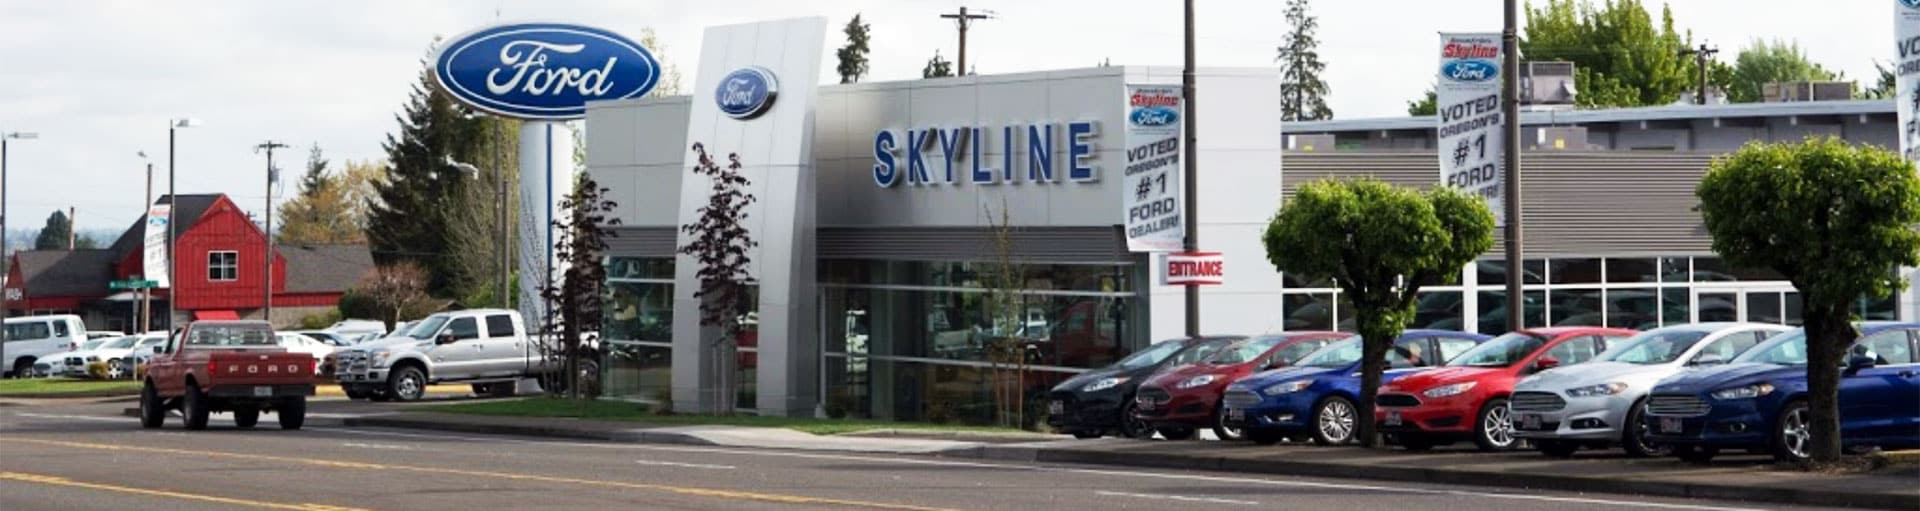 Skyline Ford Service Center